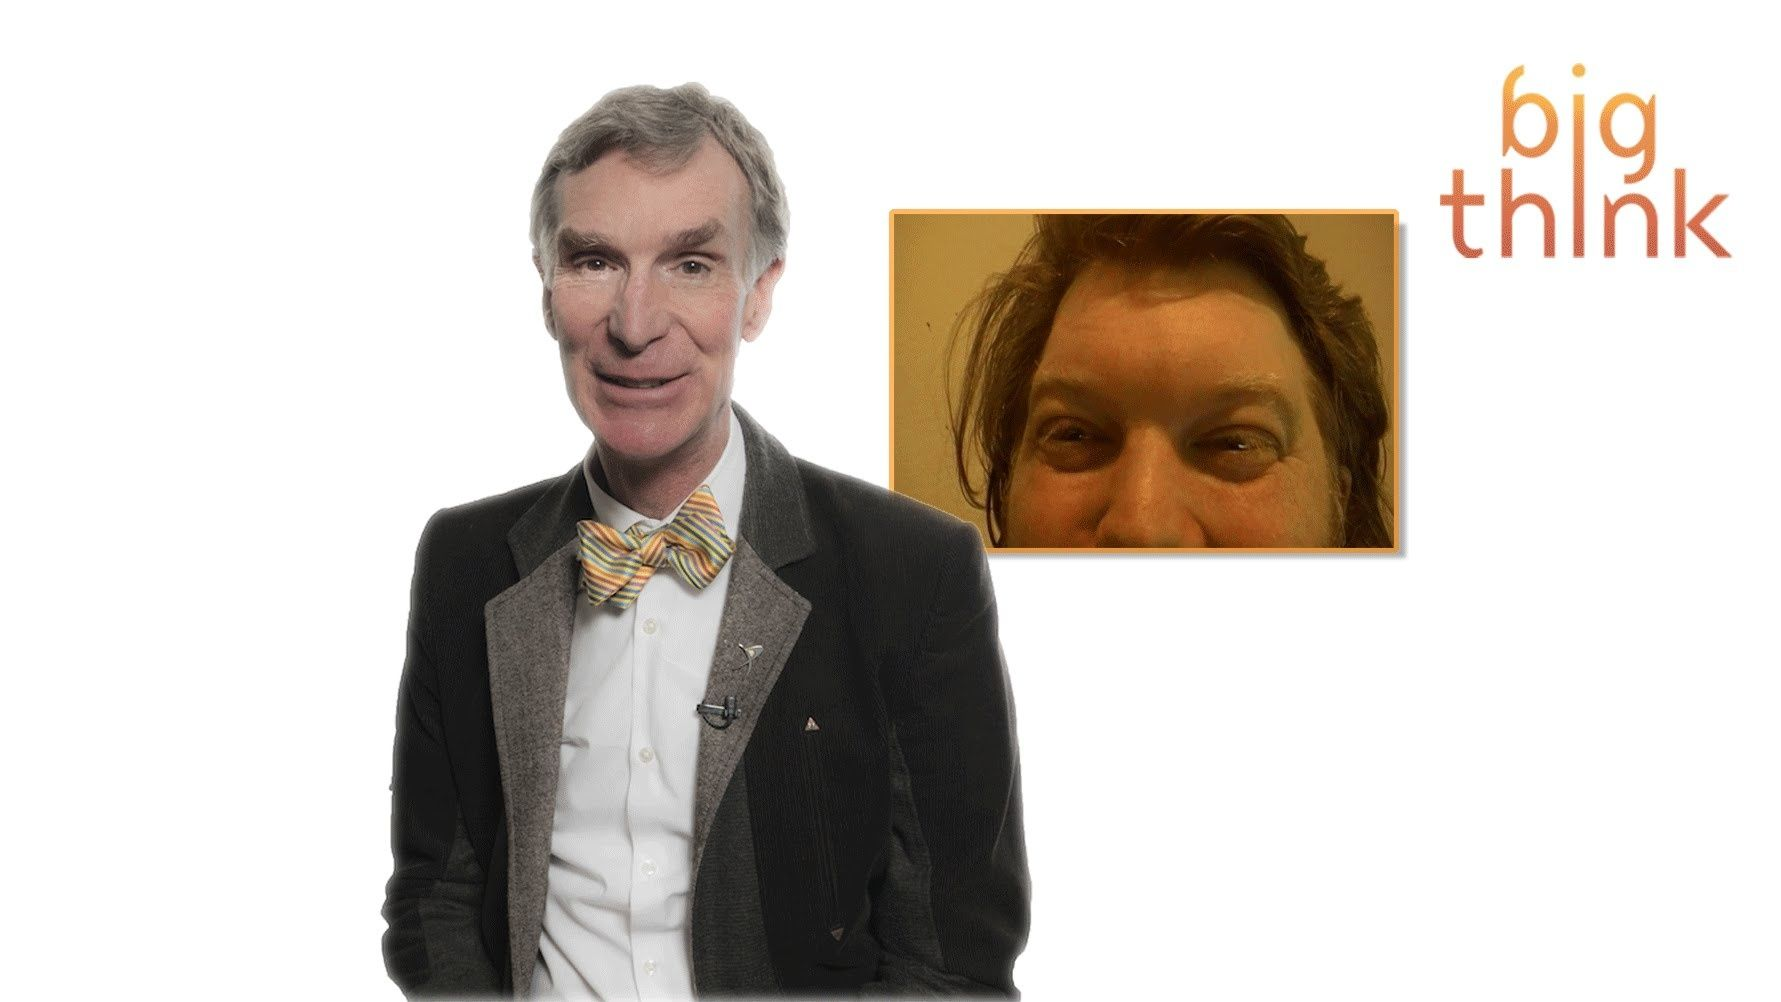 Hey Bill Nye What If The Moon Were Made Of Green Cheese